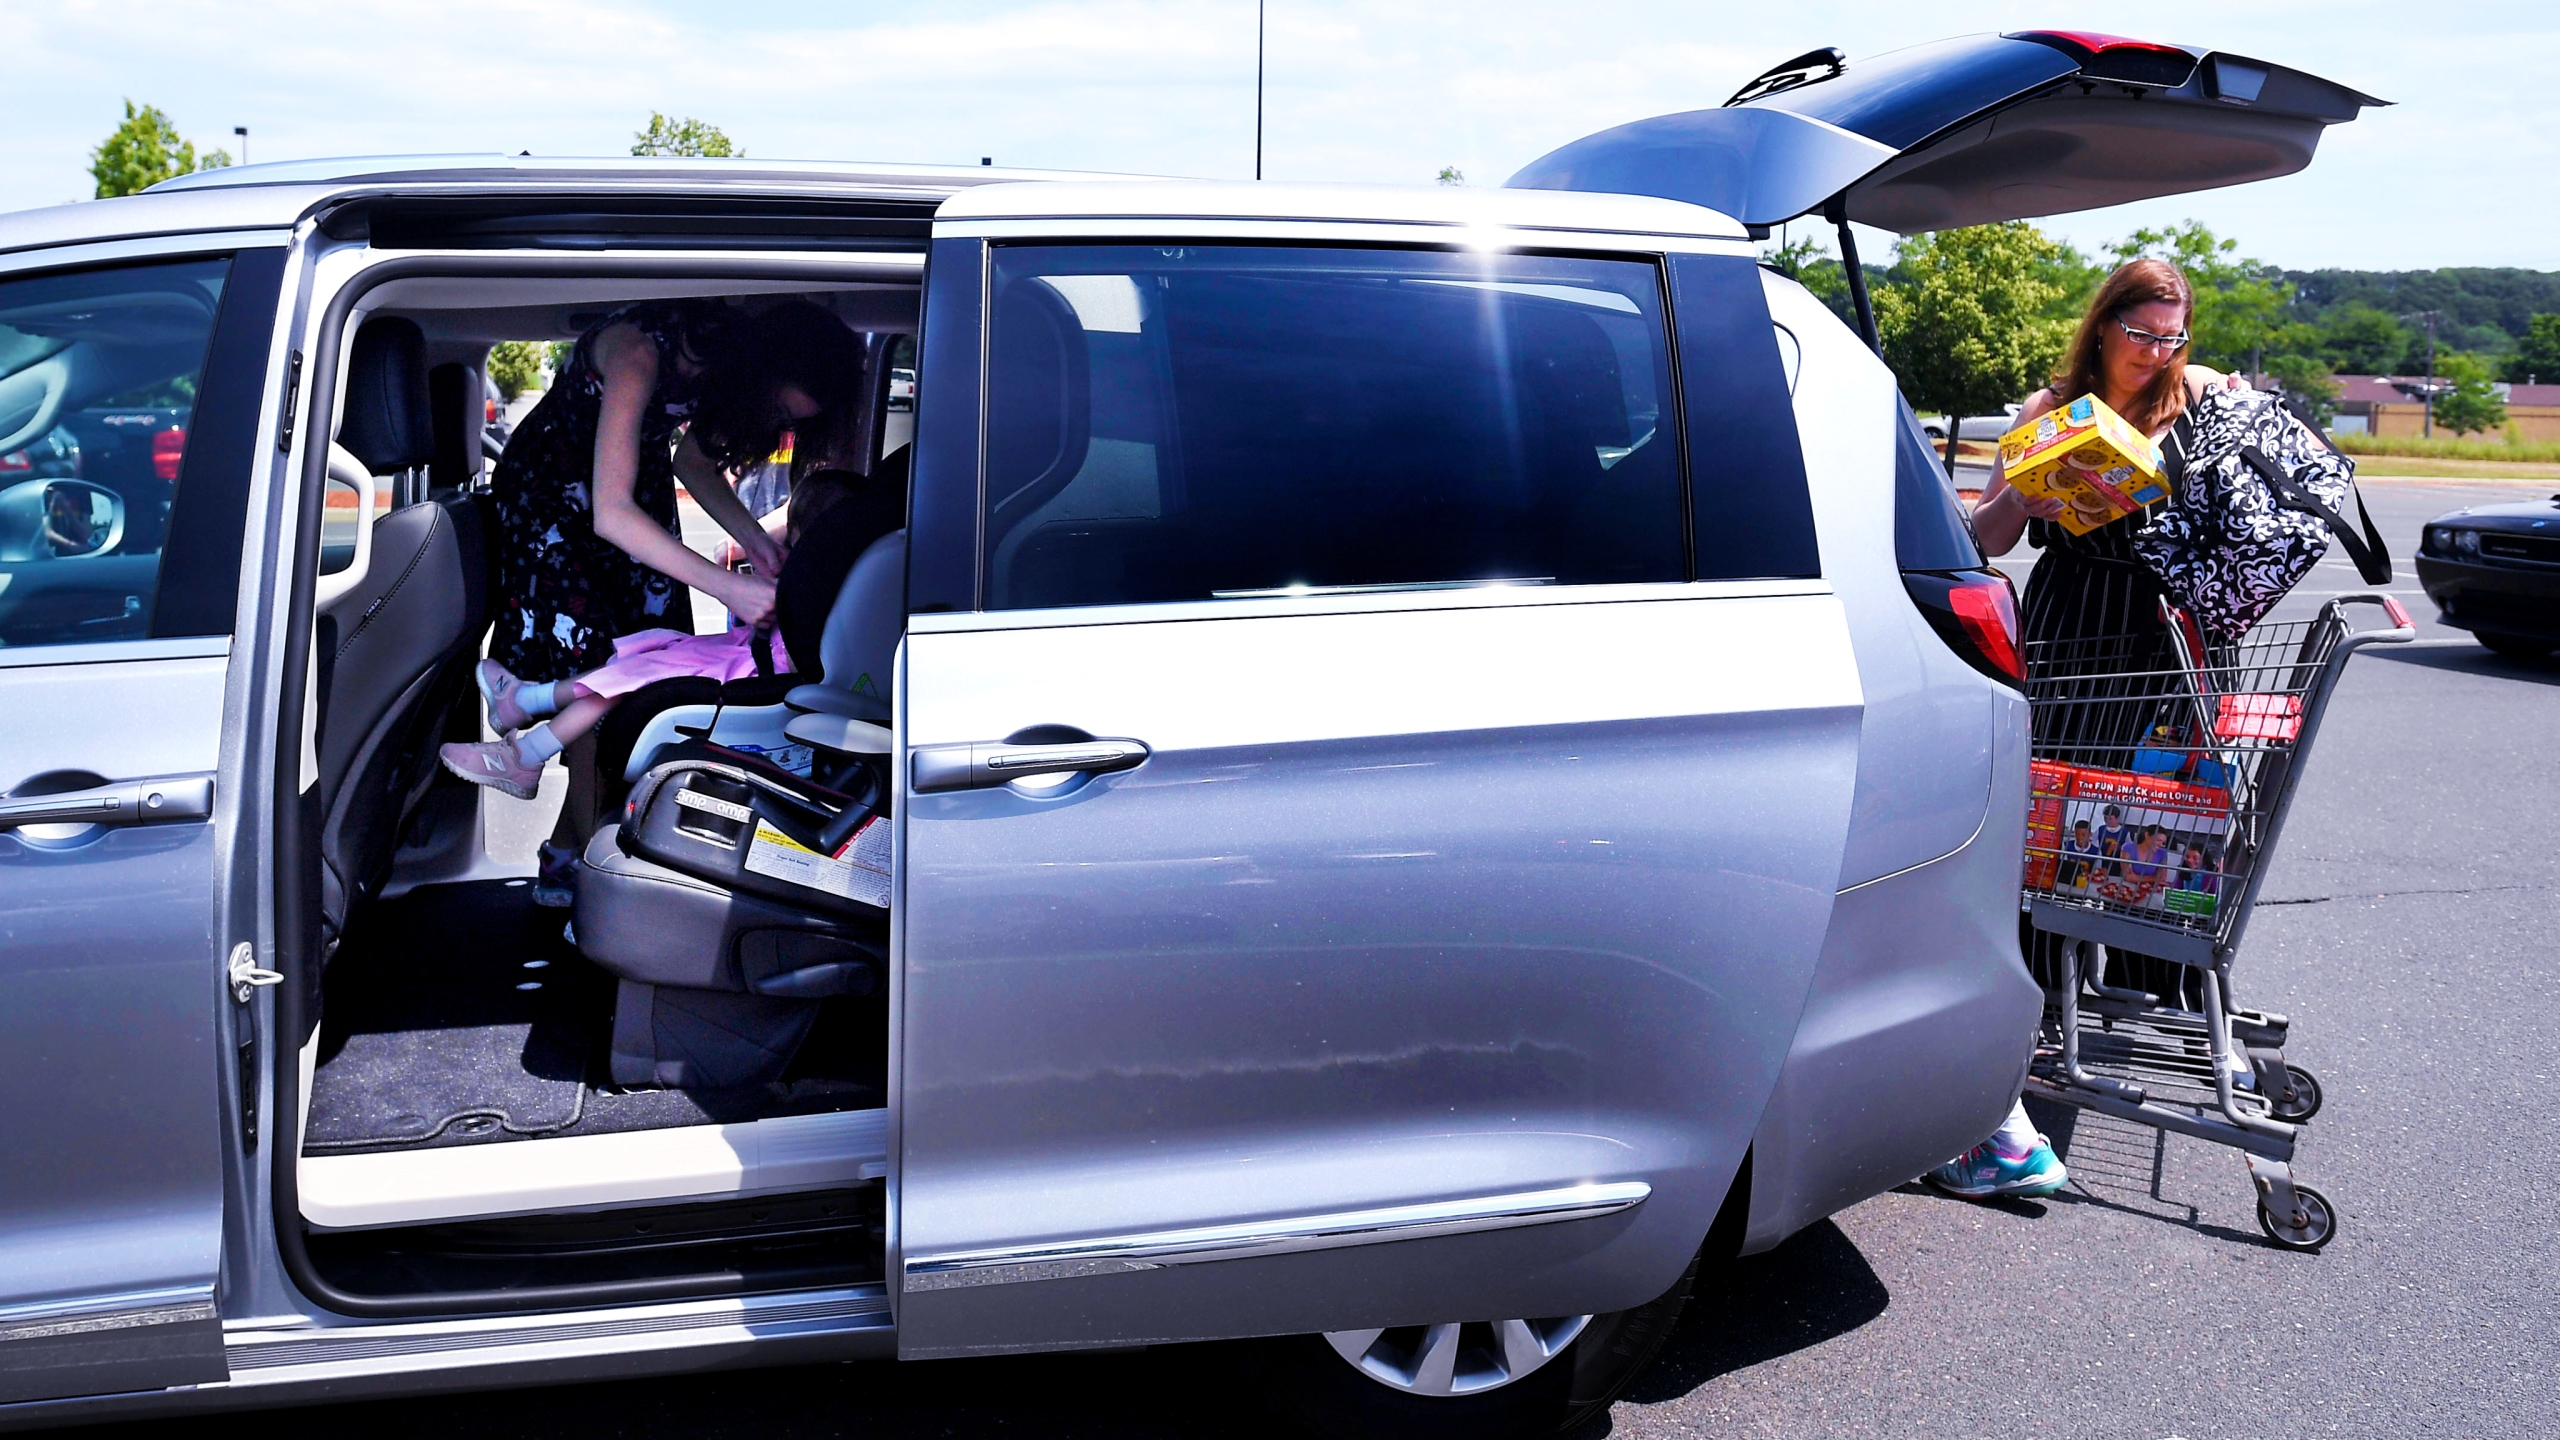 Buckling a child into a car seat in a minivan